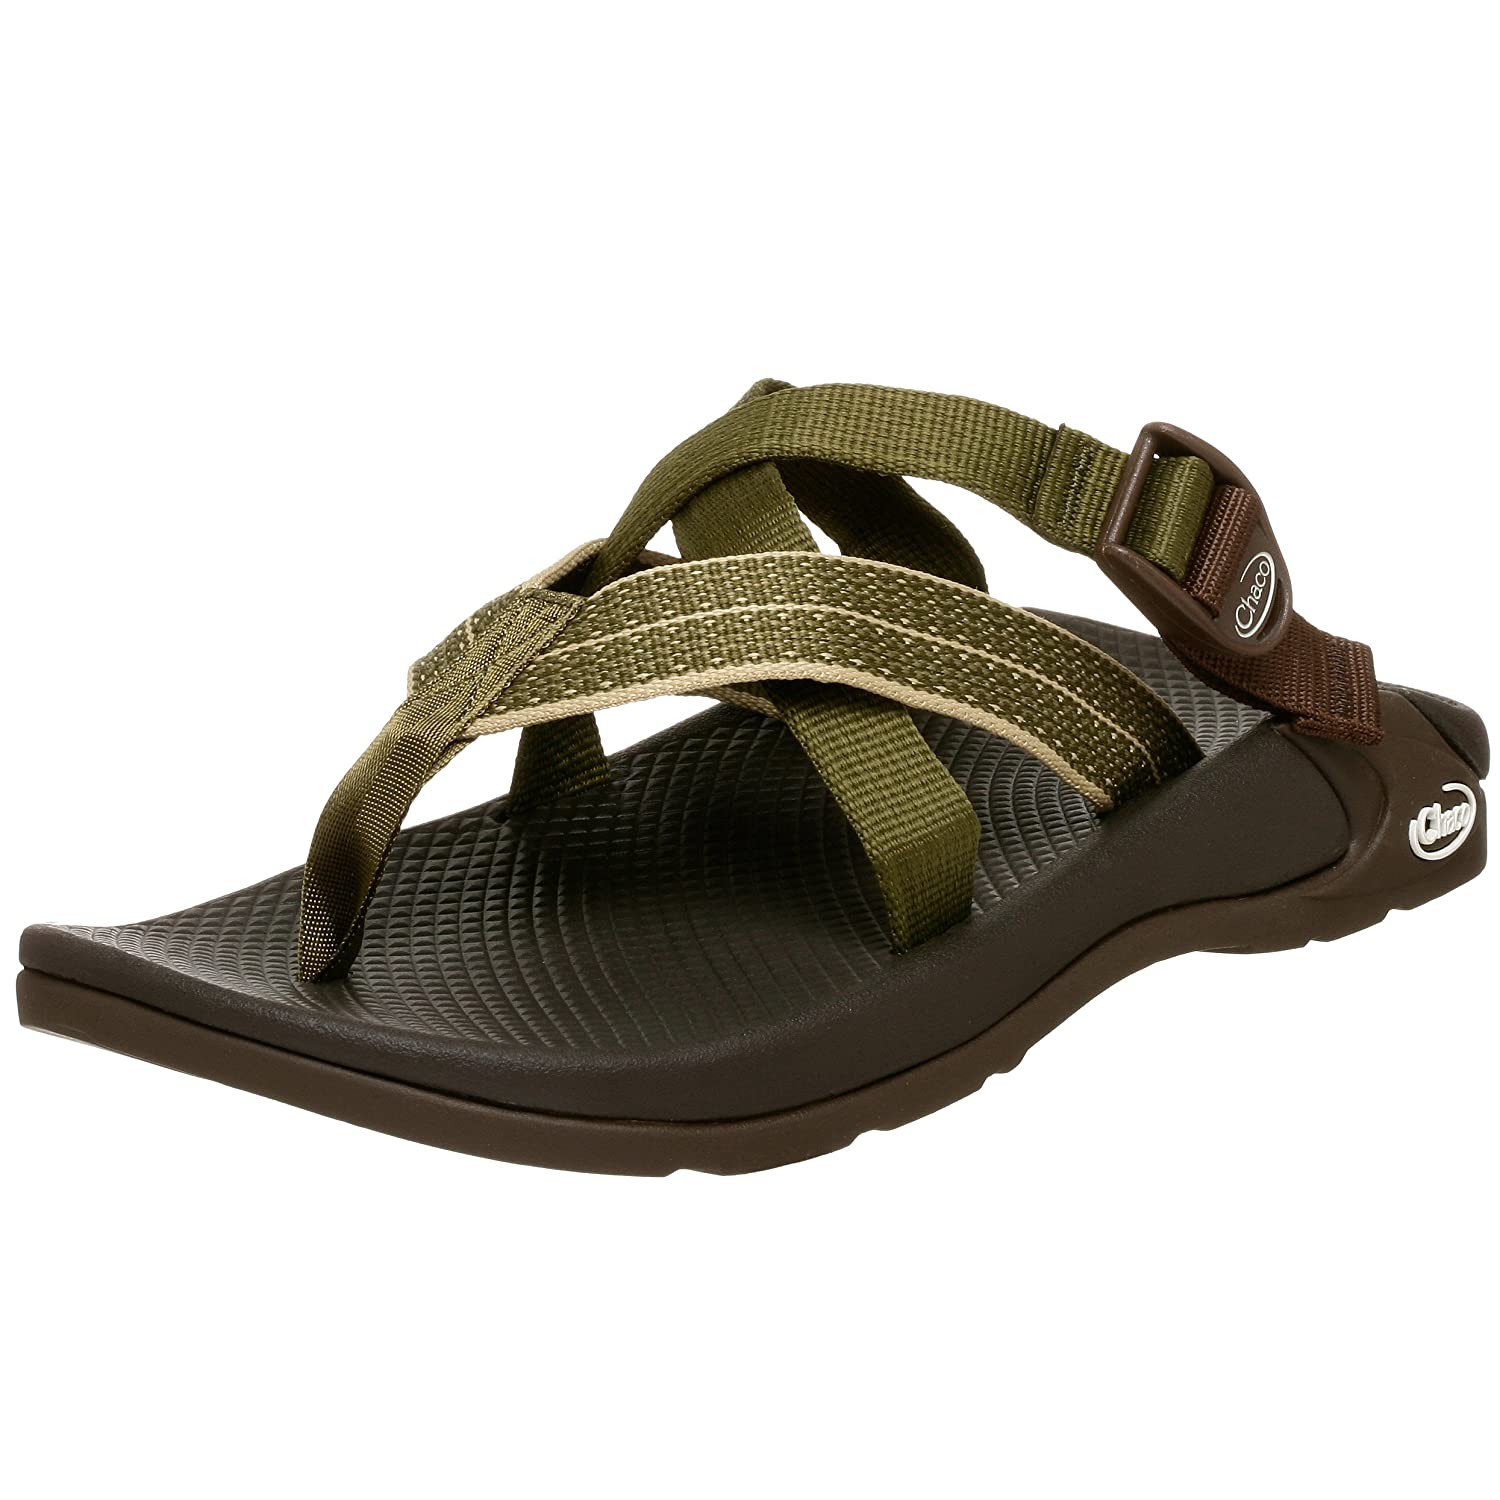 Tally Tally Navy Chaco Wohommes Zcloud 2 Sport Sandal